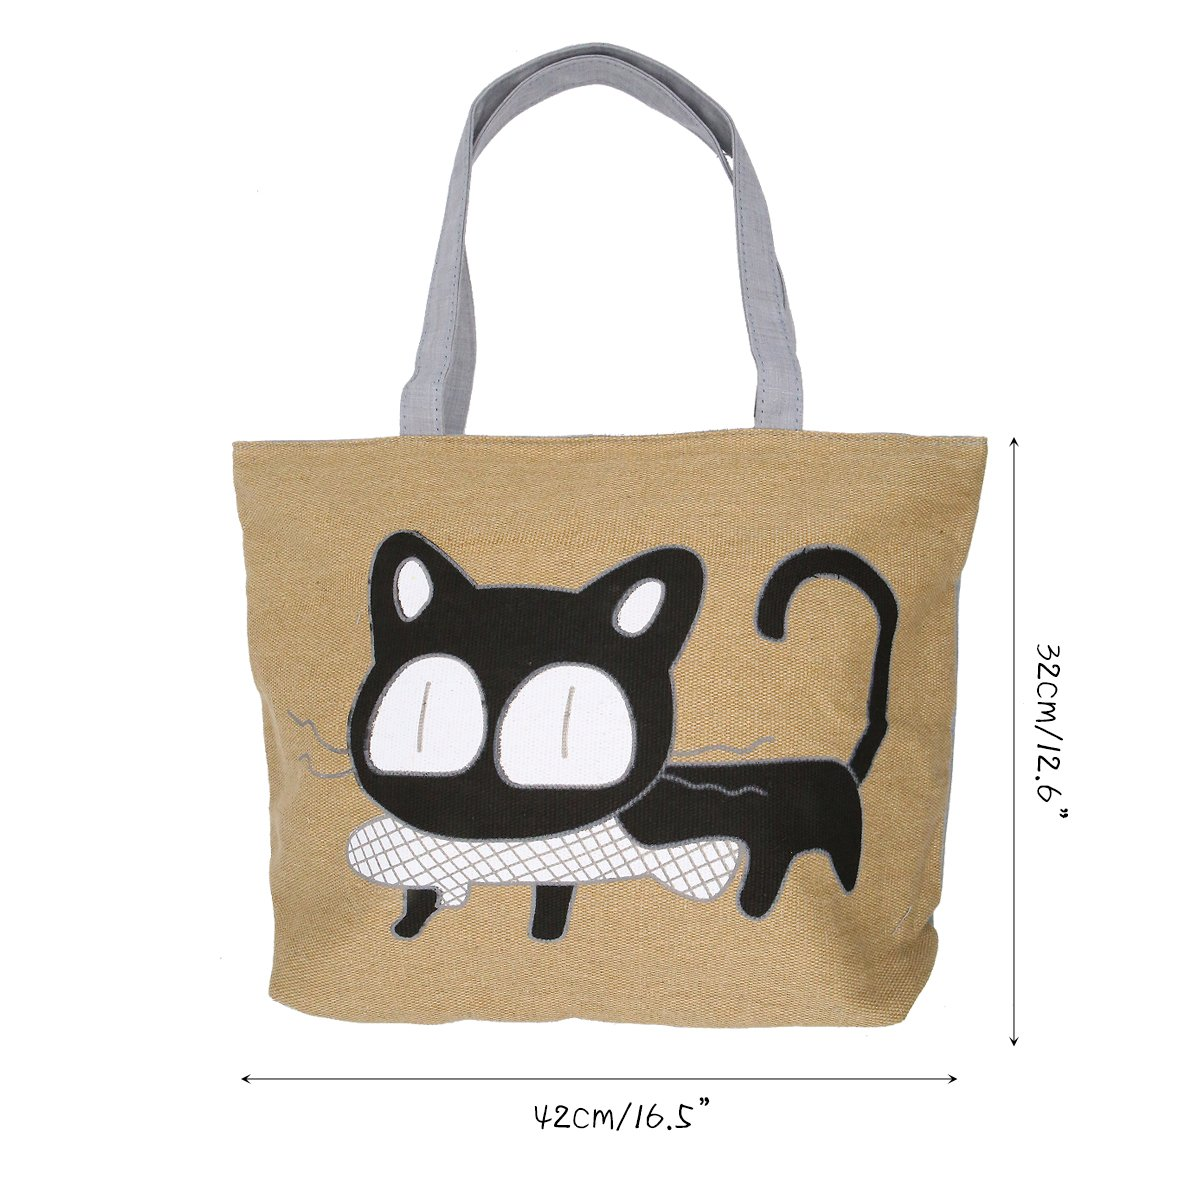 ddde71372650 Cute Cat Handbag Large Canvas Tote Bag Reusable Grocery Beach Bag Shopping  Bag With Zipper For Women And Girls(Yellow)